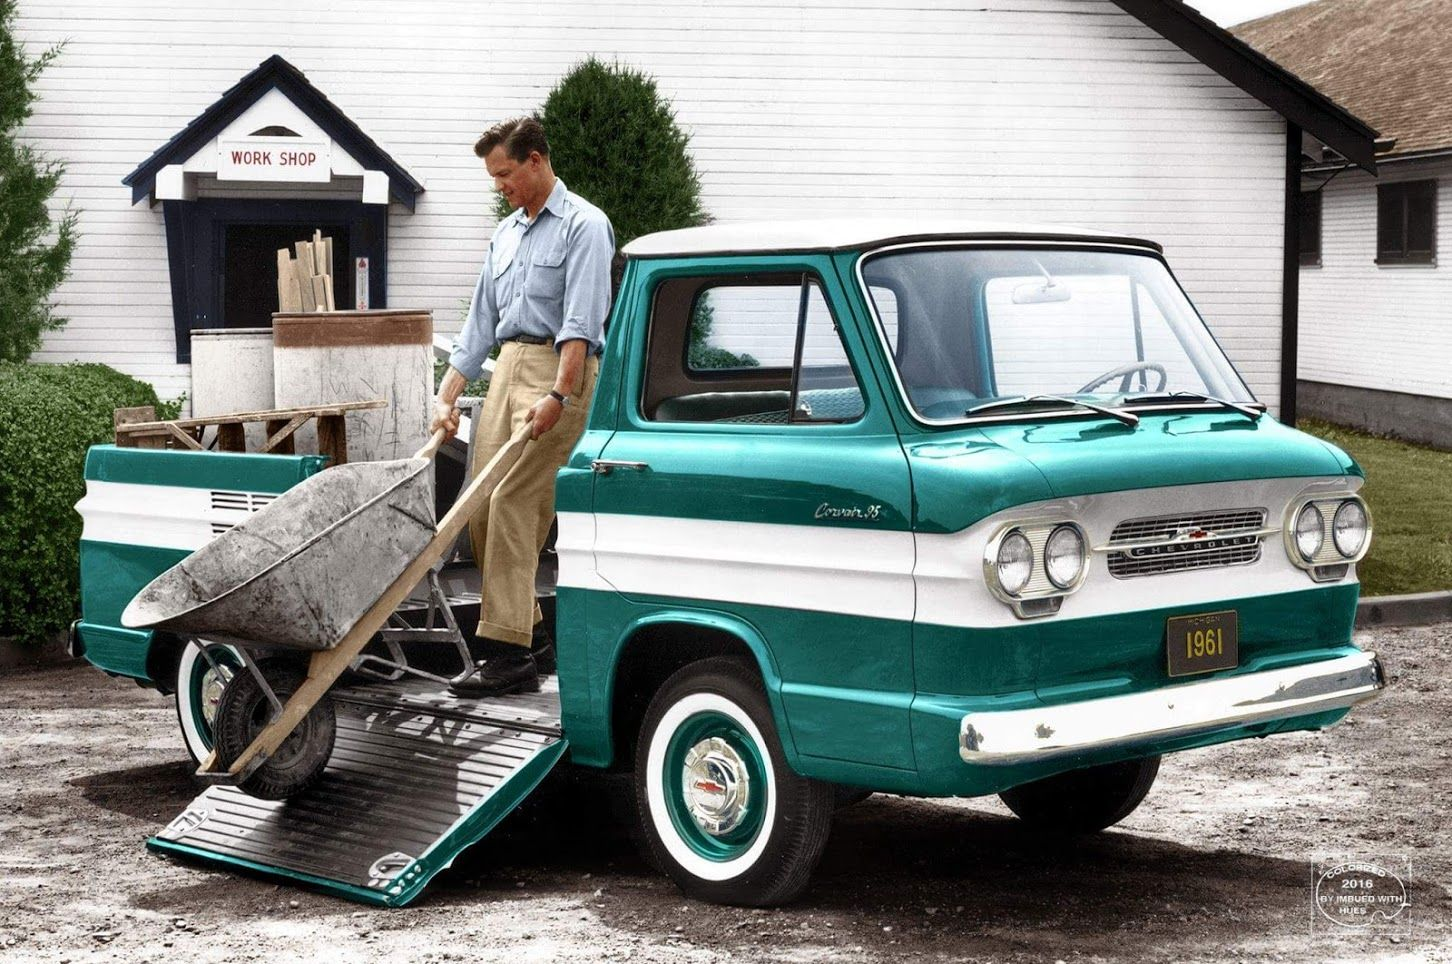 1961 Chevrolet Corvair 95 Pickup Truck Side Ramp Image Colorized By Chevy Panel Van Imbued Hues